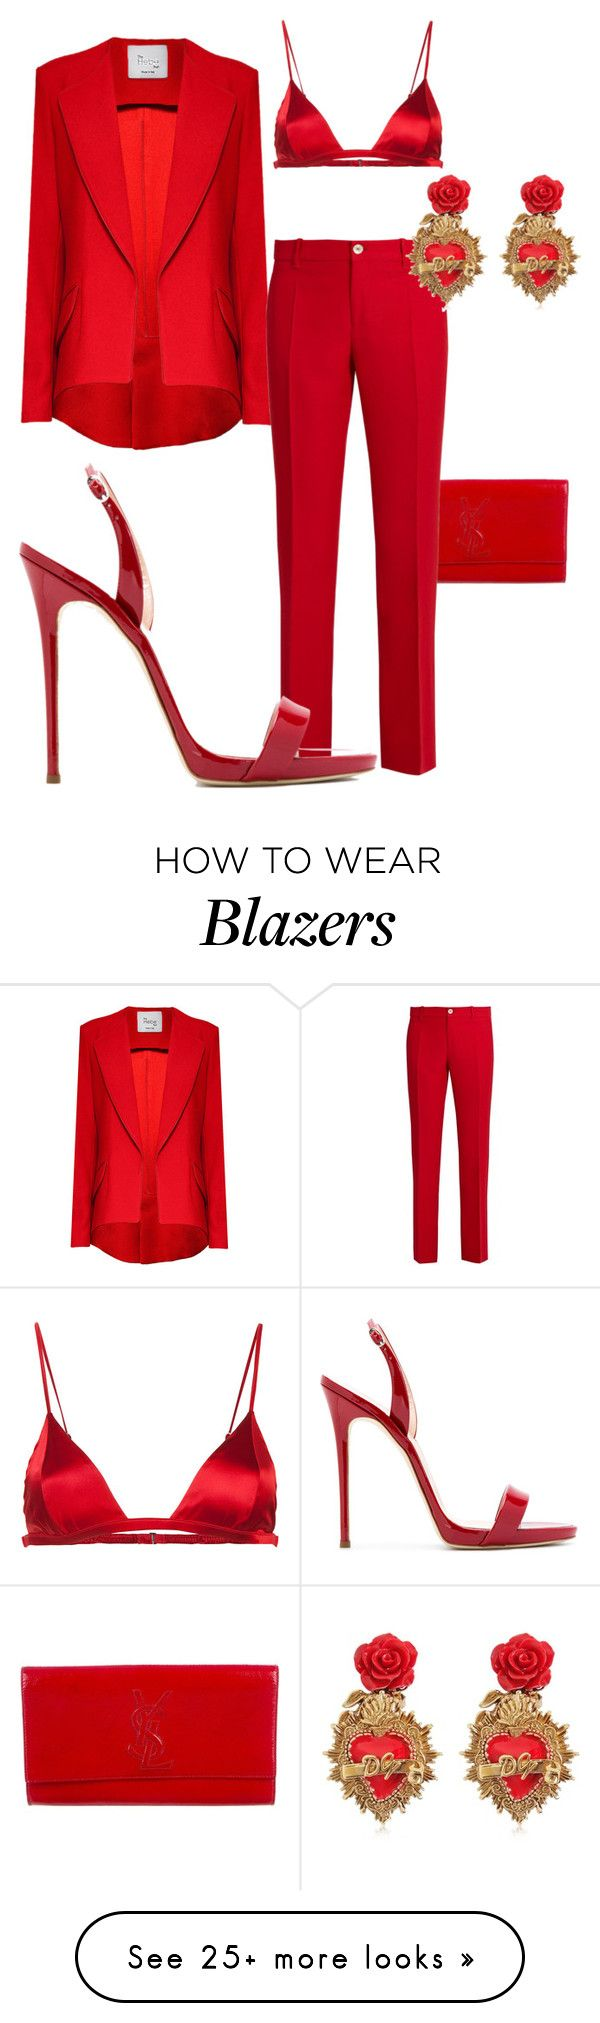 """Crash Cart"" by roxysgotmoxy on Polyvore featuring Fleur du Mal, Hebe Studio, Yves Saint Laurent, Gucci, Giuseppe Zanotti, Dolce&Gabbana, parisfashionweek and Packandgo"